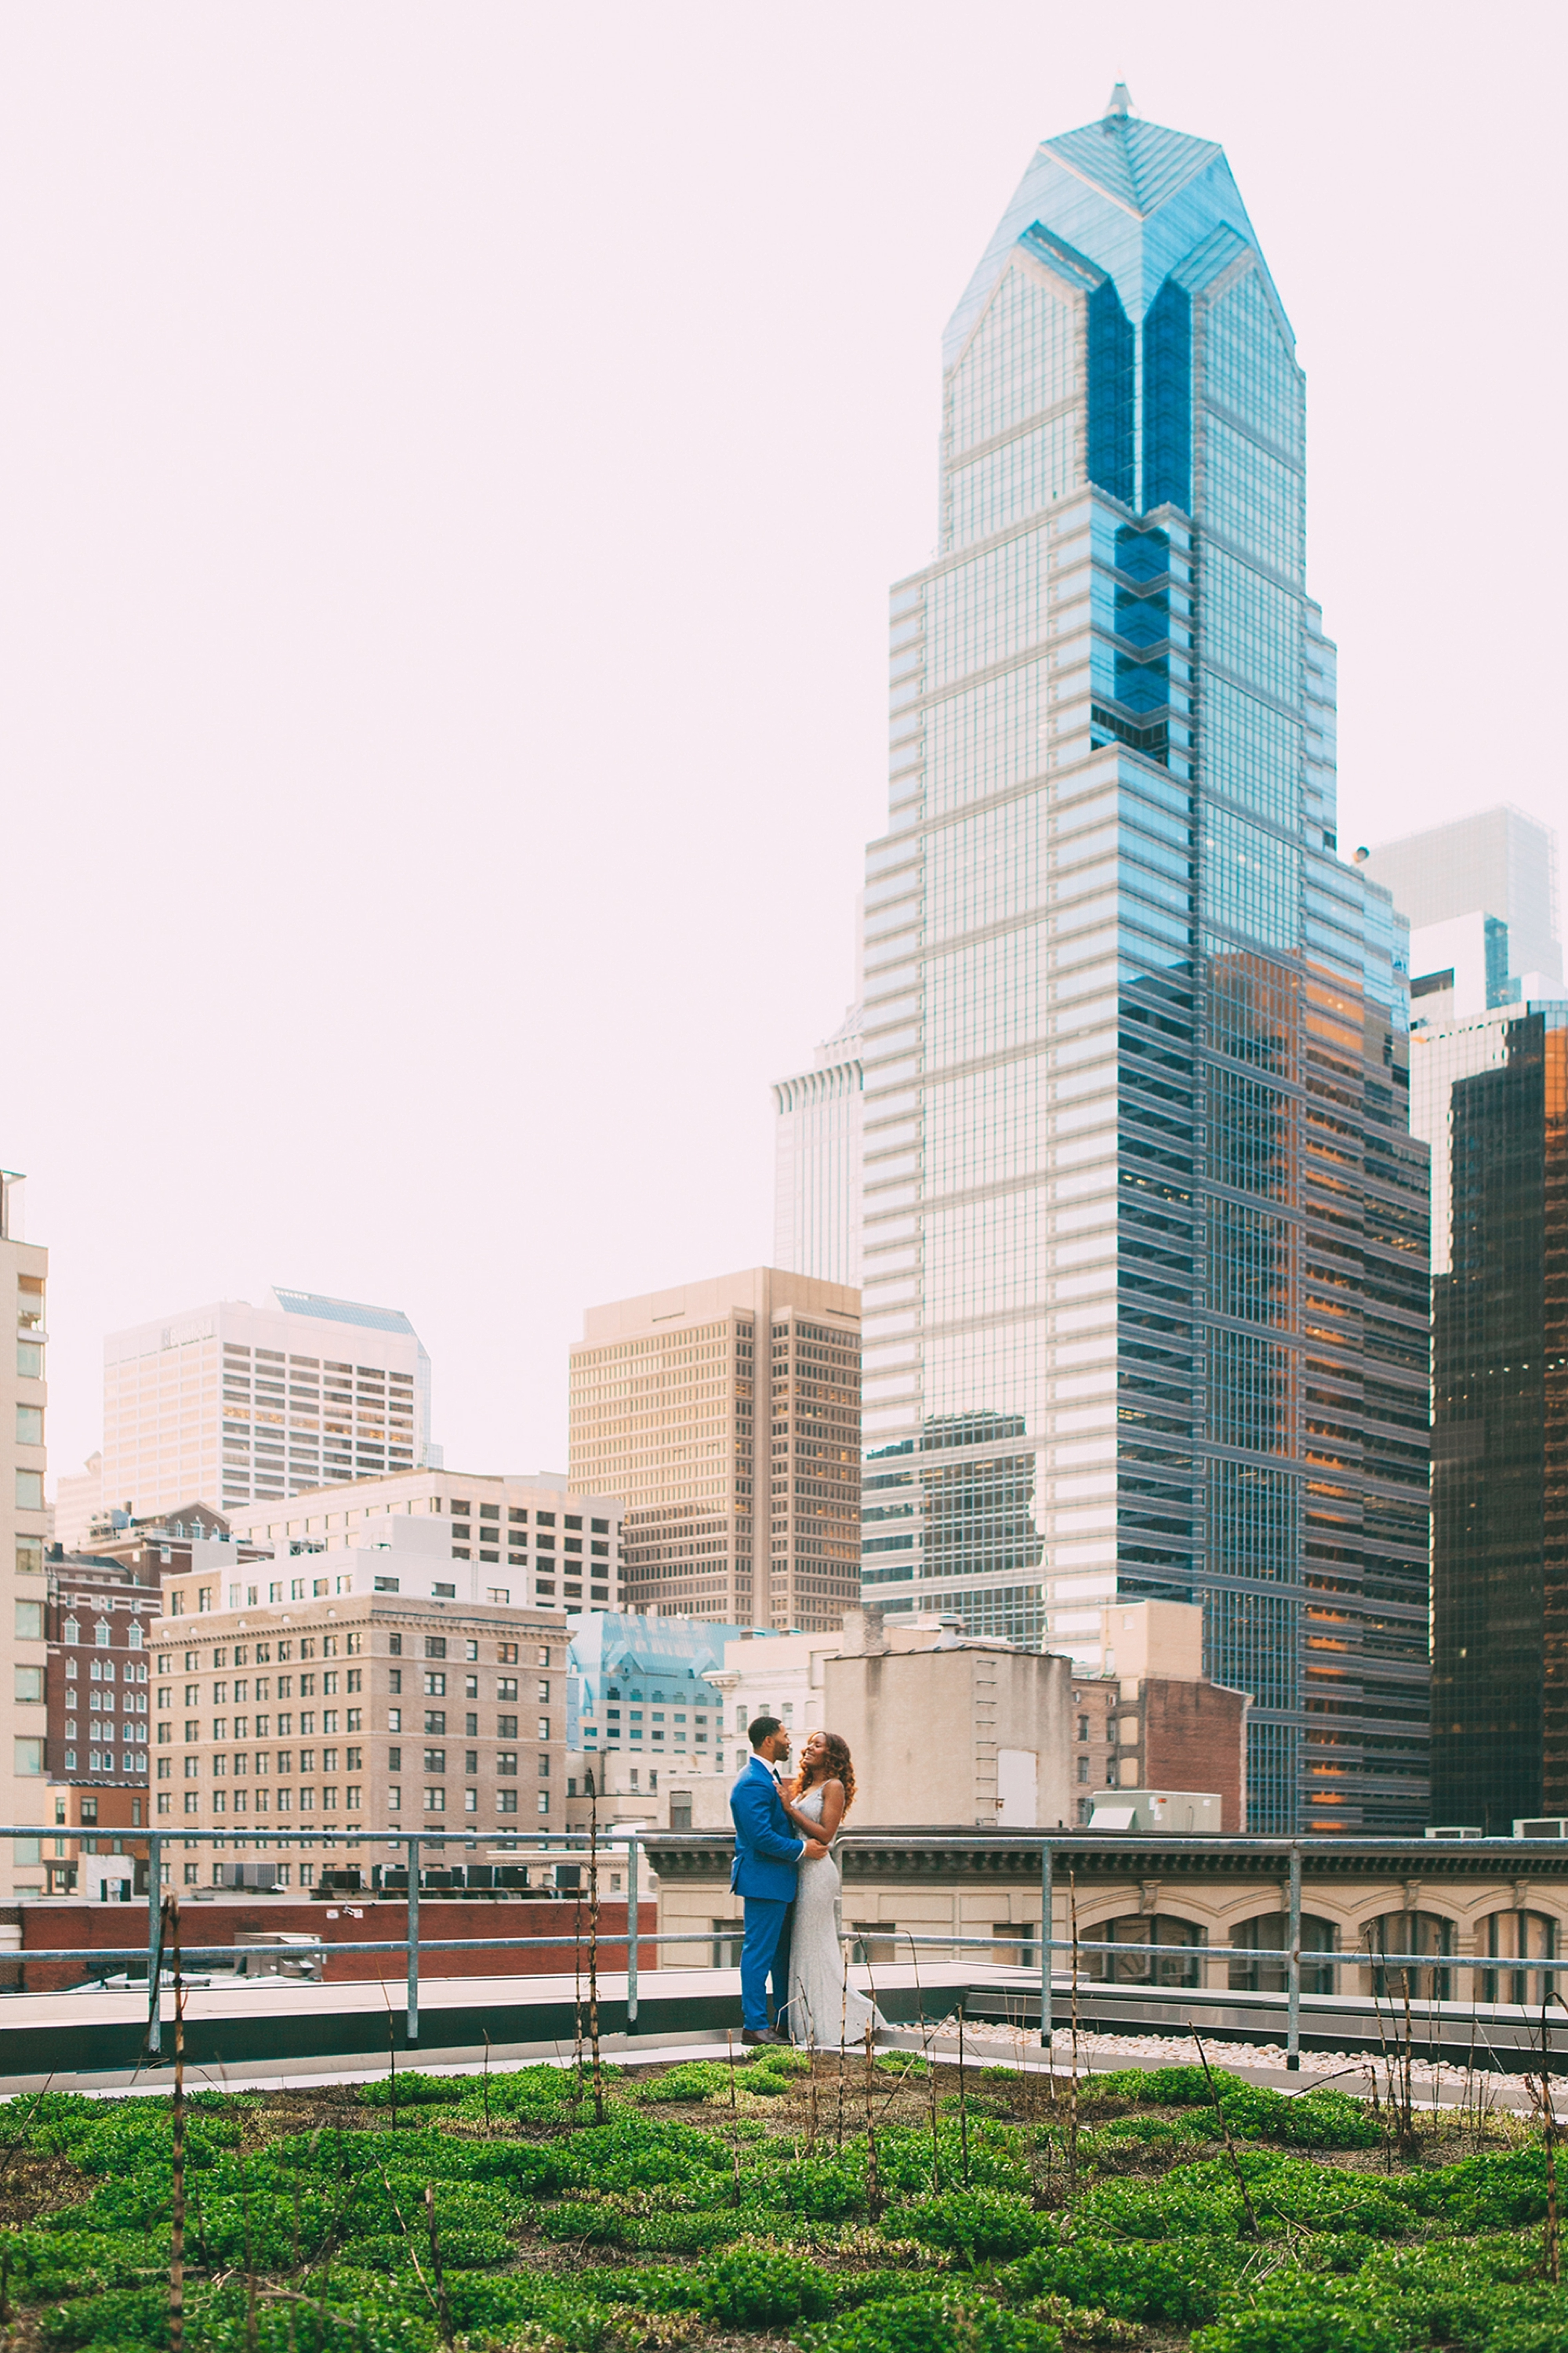 Joe_Mac_Creative_Wedding_Engagements_Photography_Philadelphia_Broad_Street_Proposal_0019.jpg